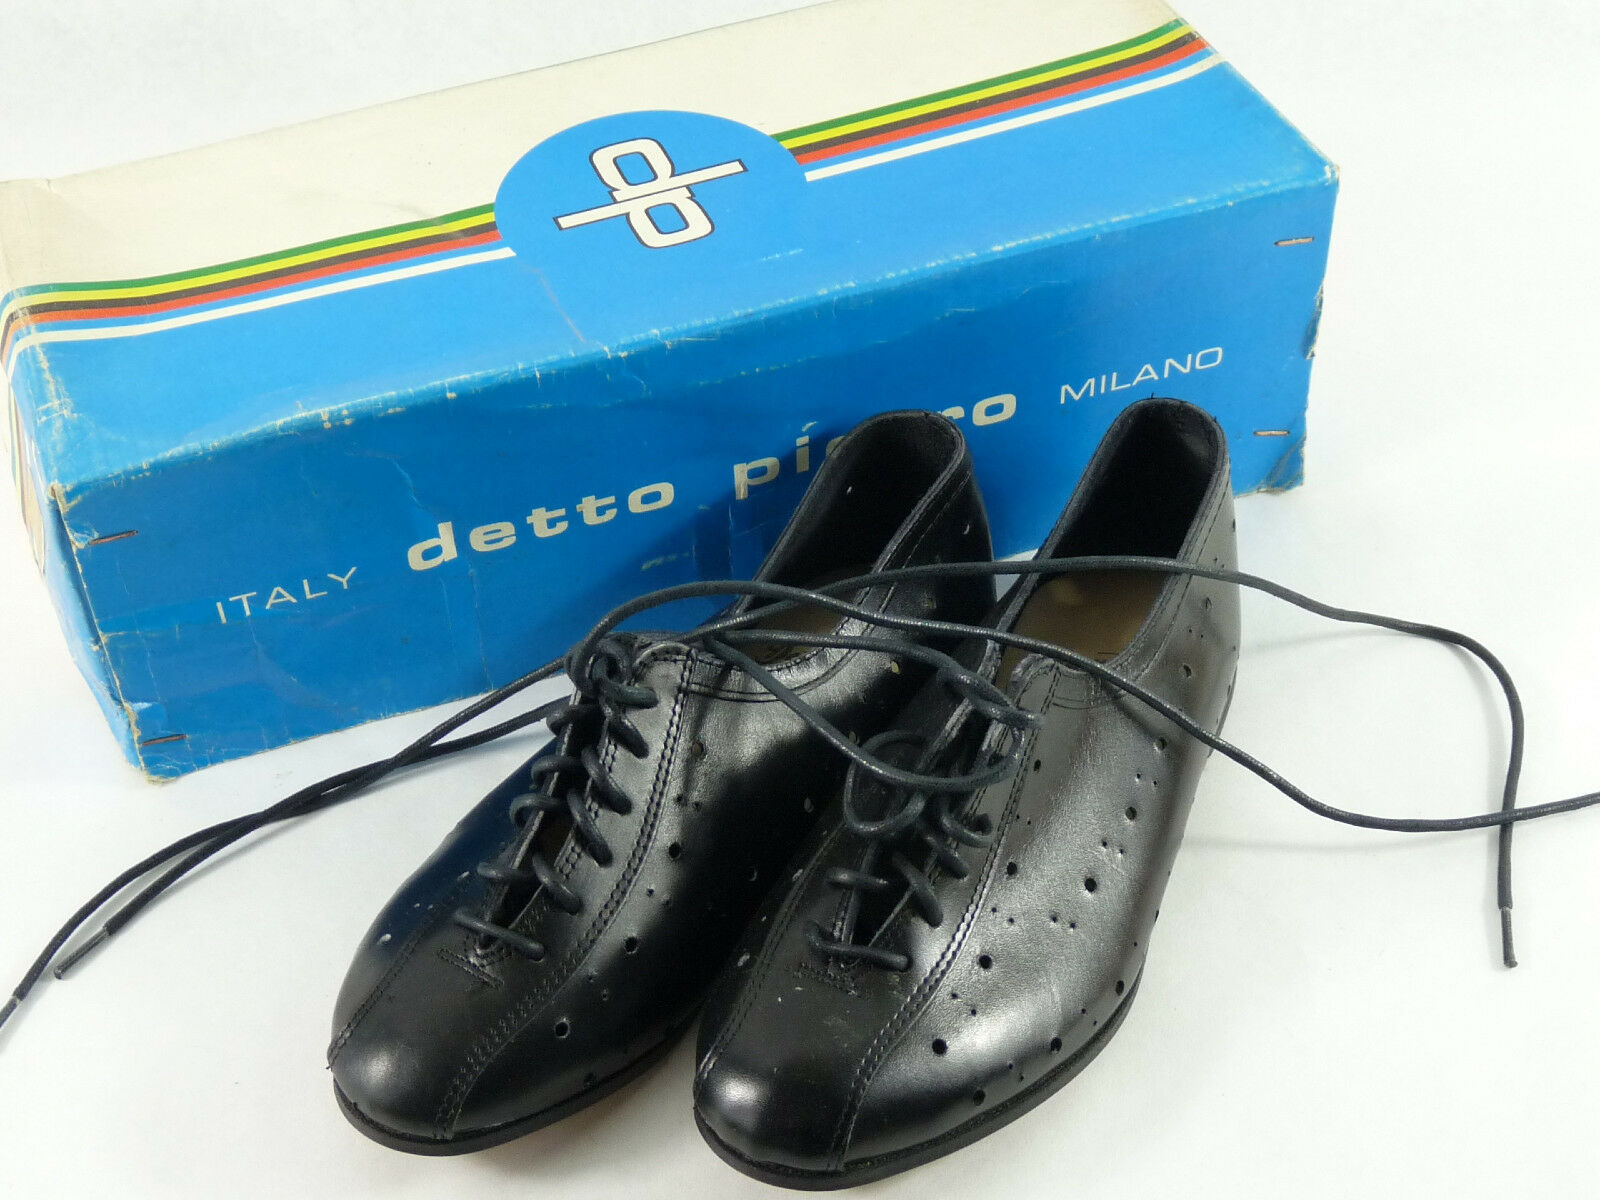 Detto Pietro shoes Italian cycling size  33 Vintage Bike Racing shoe NOS  online at best price